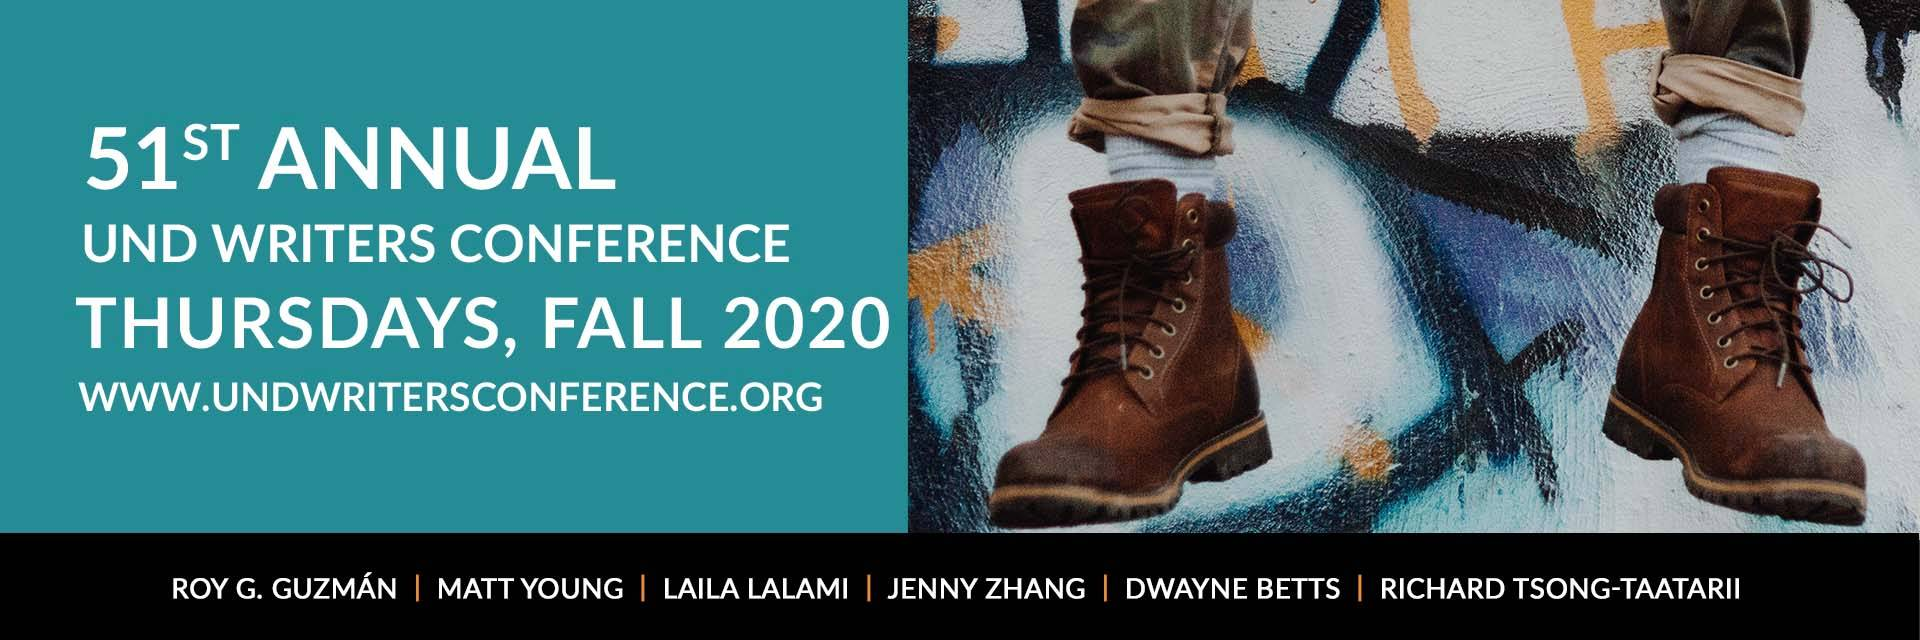 51st Annual UND Writers Conference, Online Thursdays Fall 2020